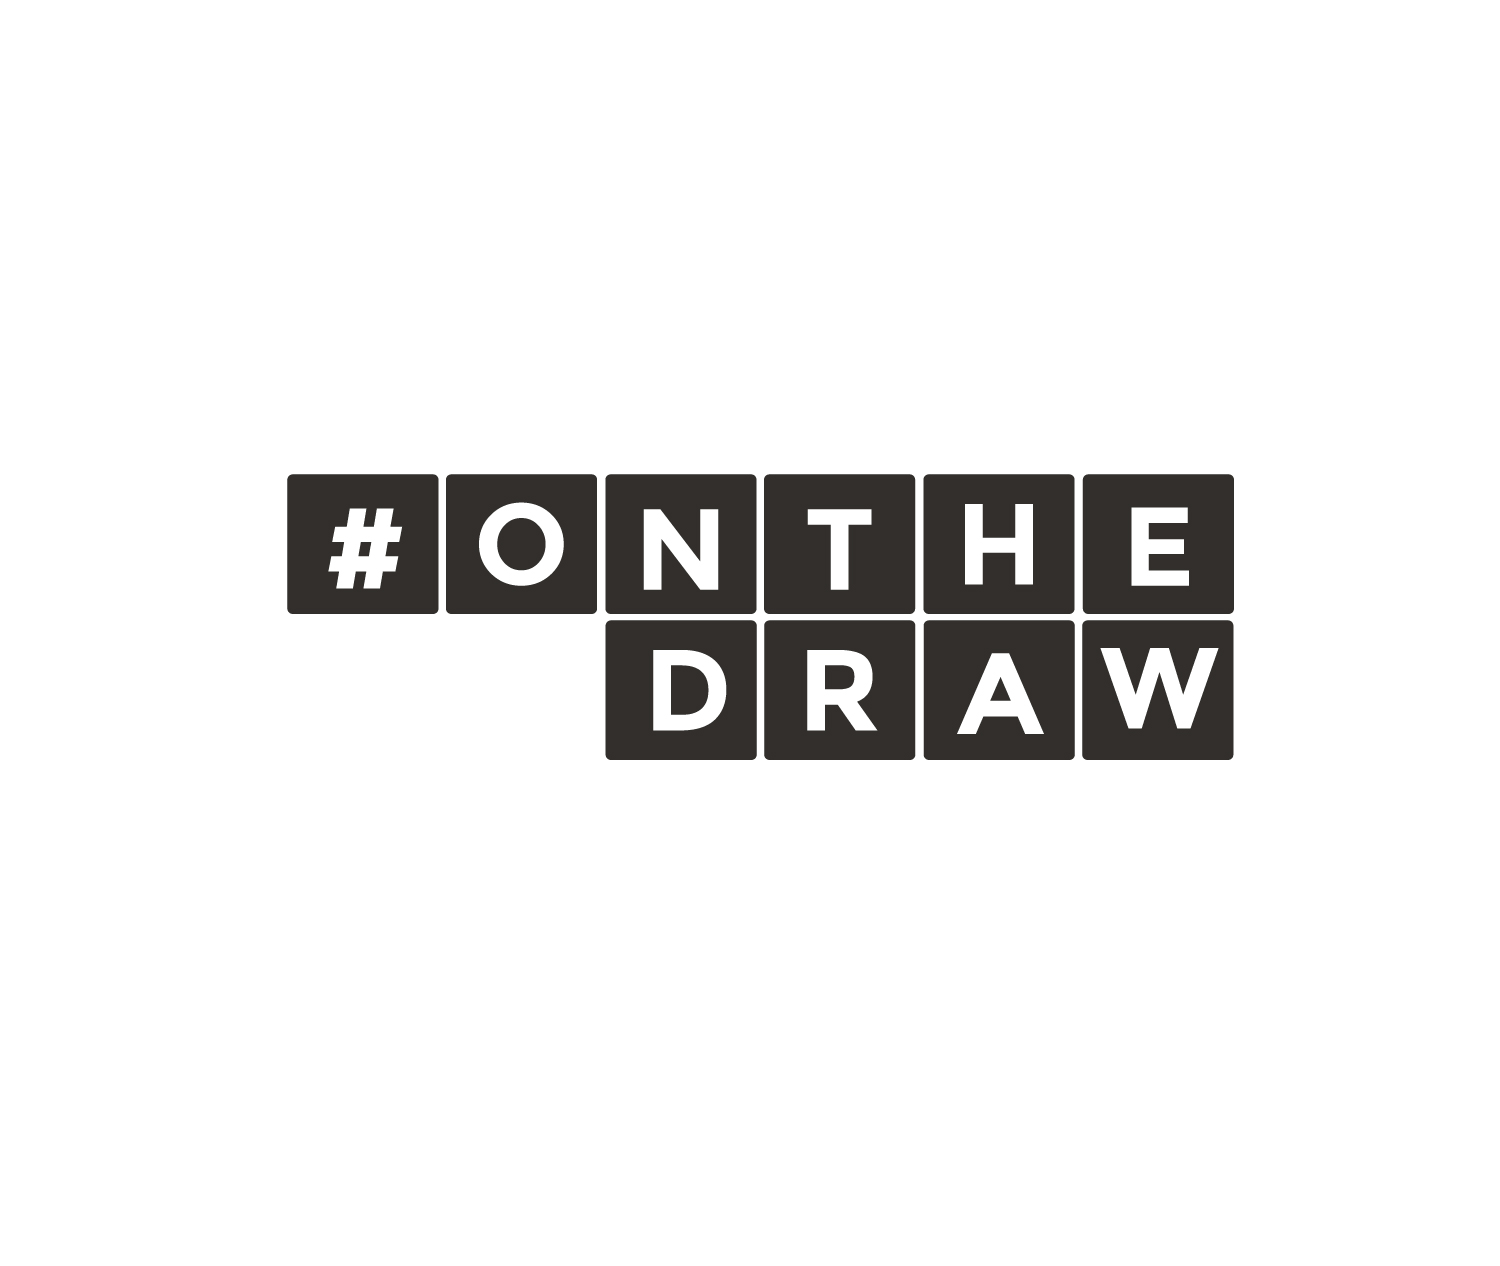 onthedraw_1